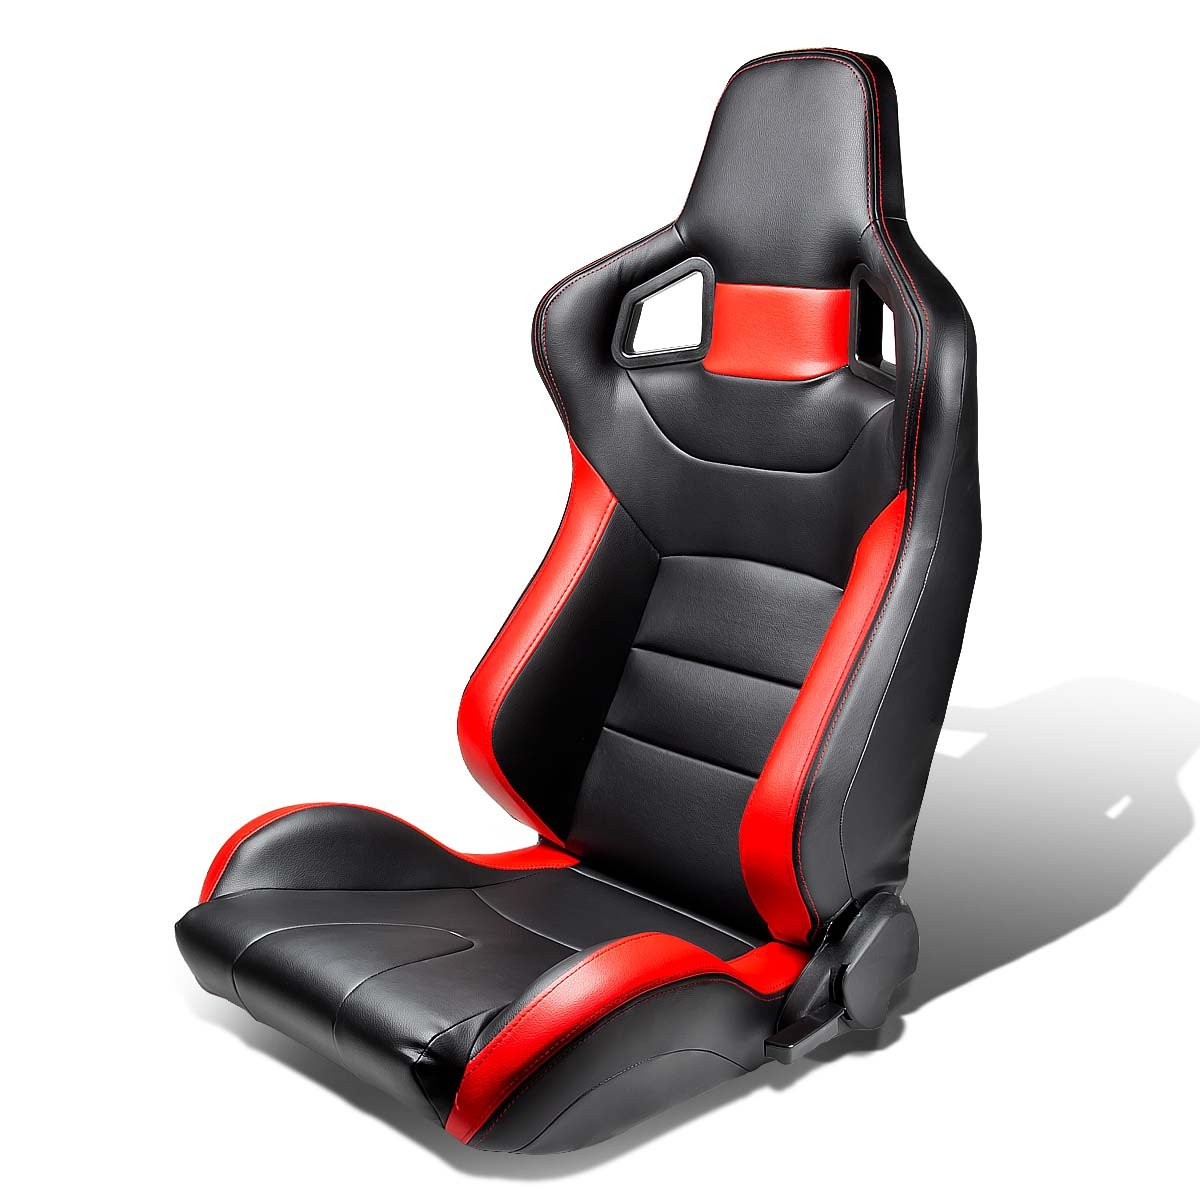 Right, Passenger Side Tuner Series Full Reclinable Black Leather Racing Seats With Red Trim